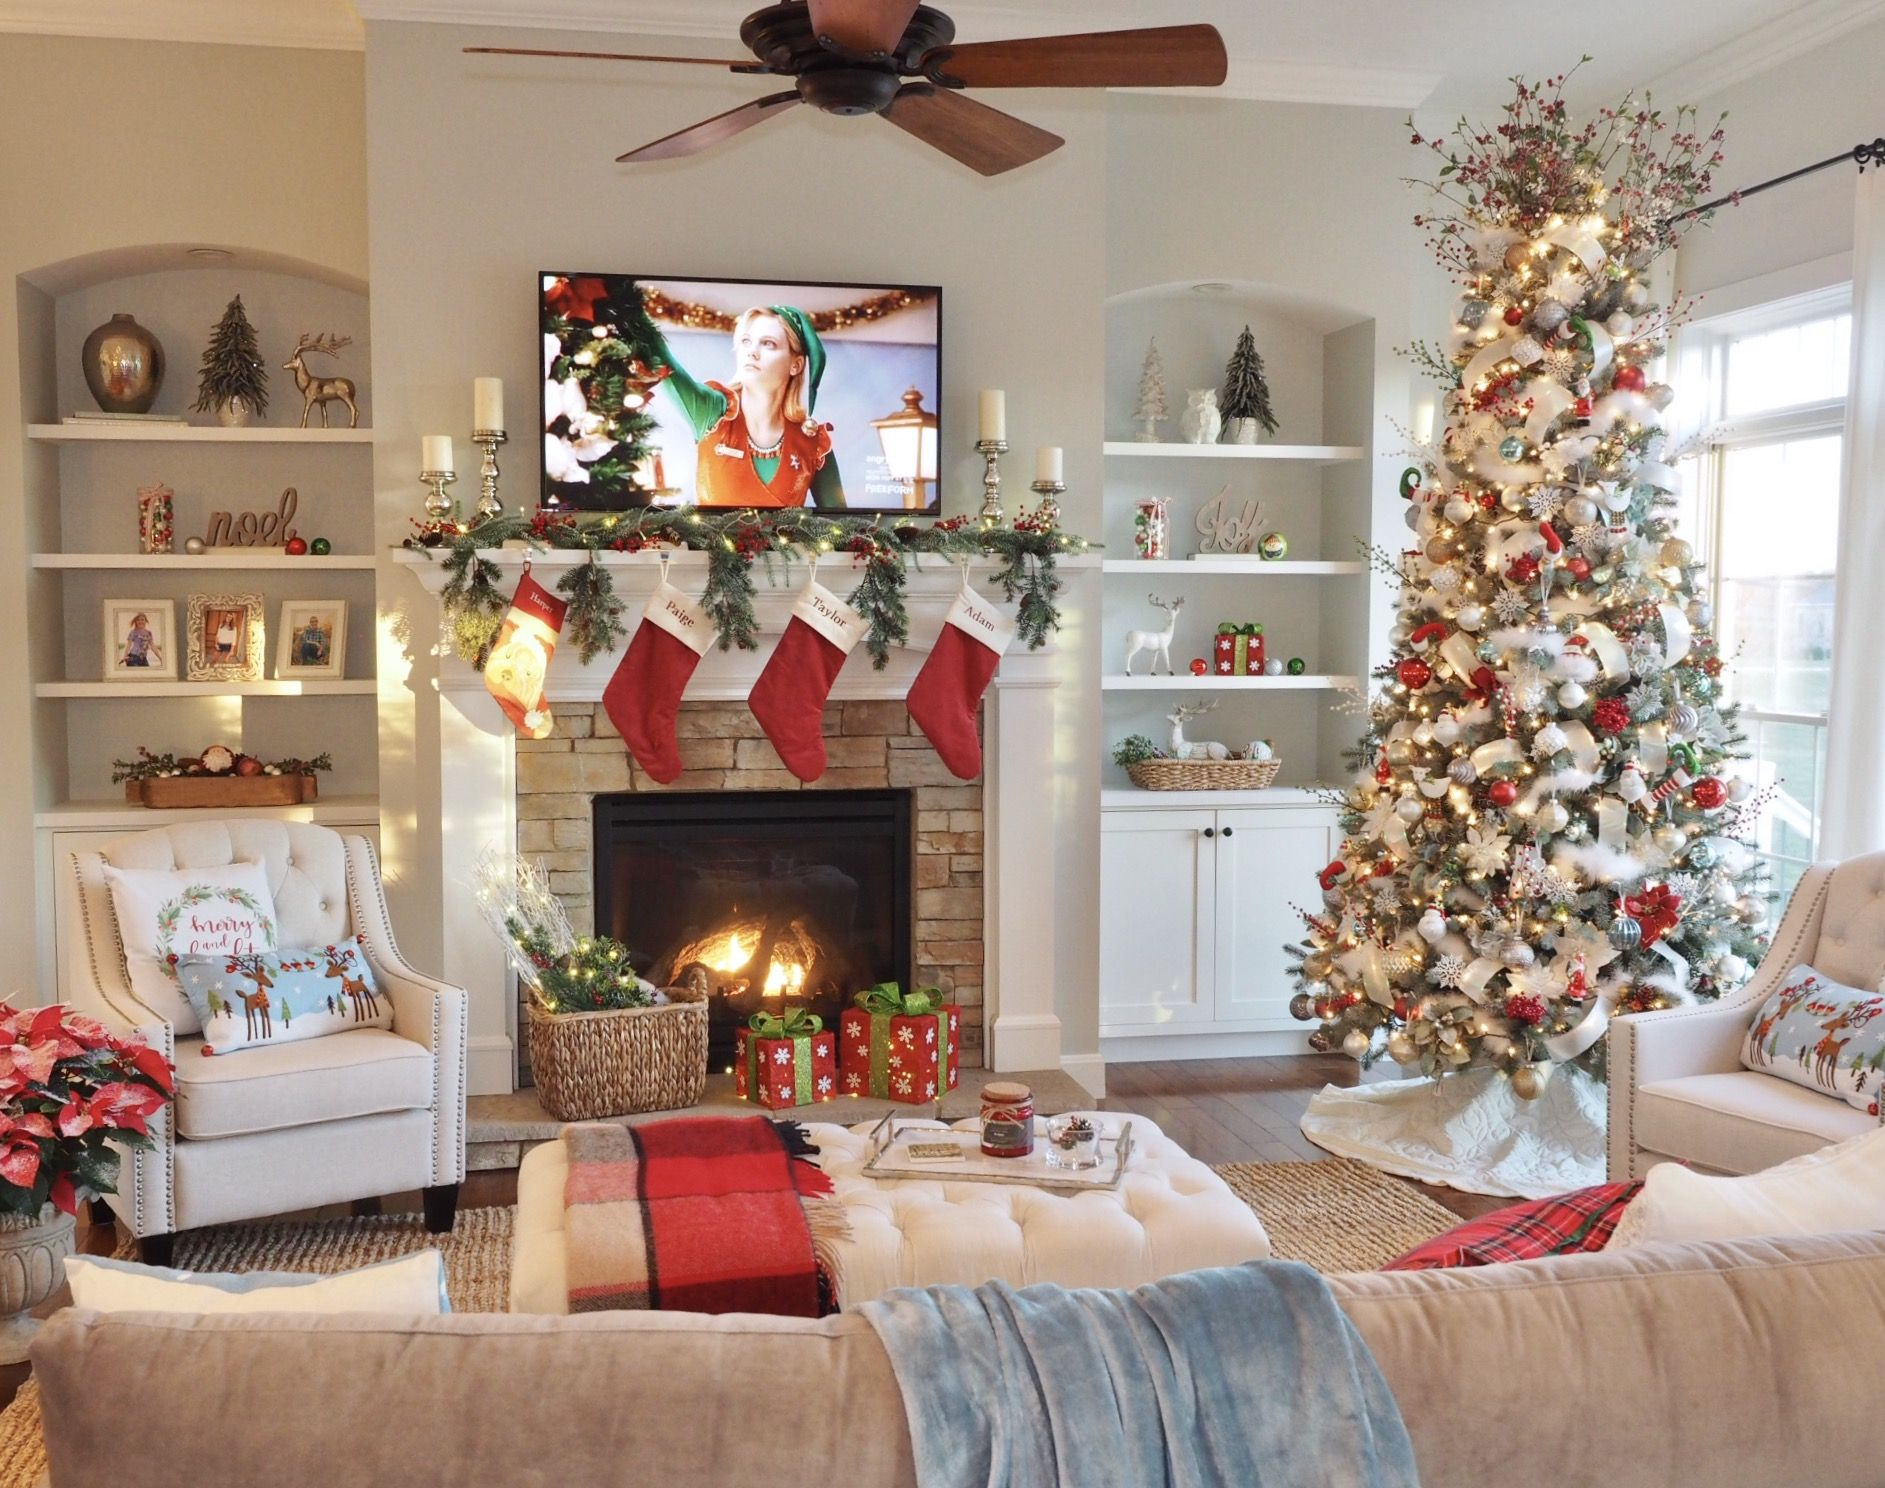 Christmas Decor Living Room Great Room Fireplace Built Ins She Christmas Decorations For The Home Christmas Decorations Living Room Christmas Living Rooms